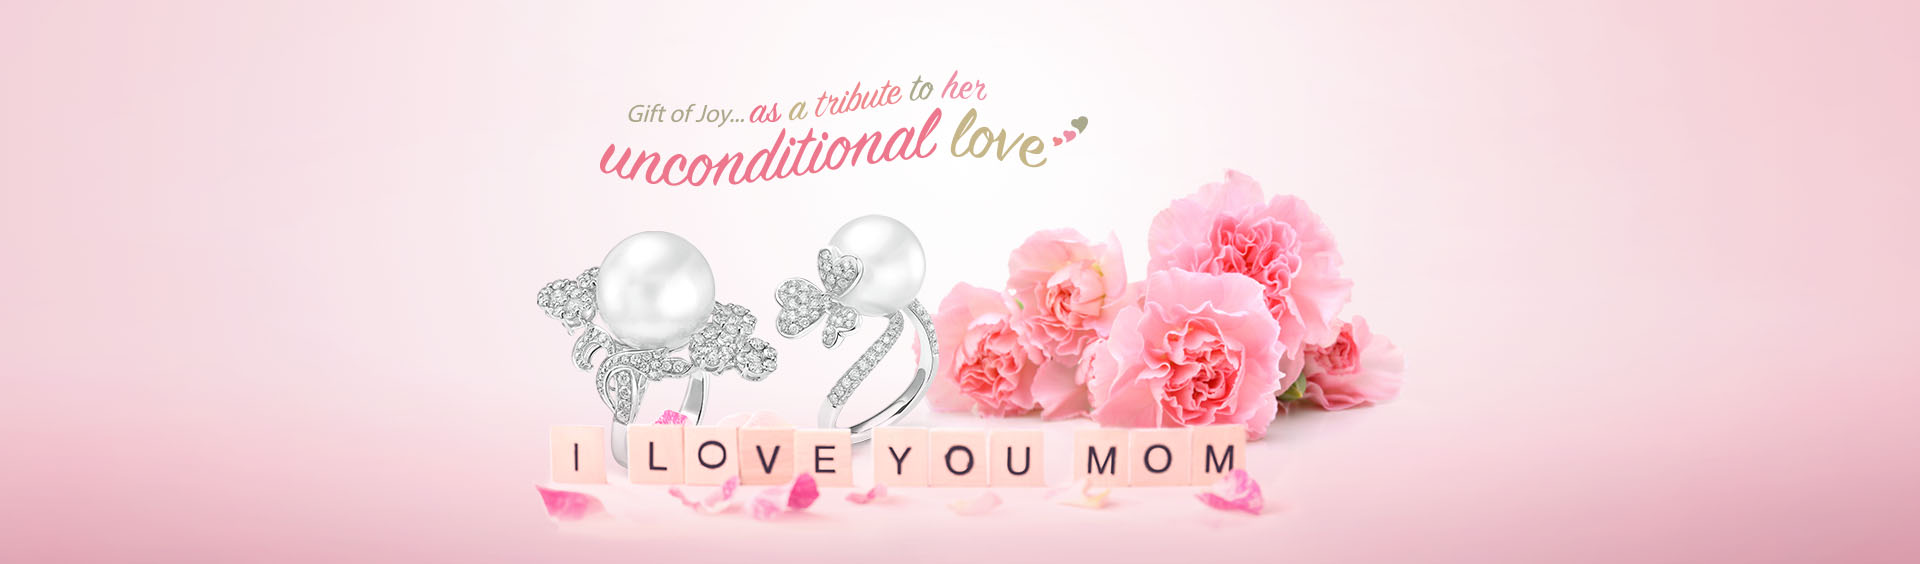 Banner [I love you mom]